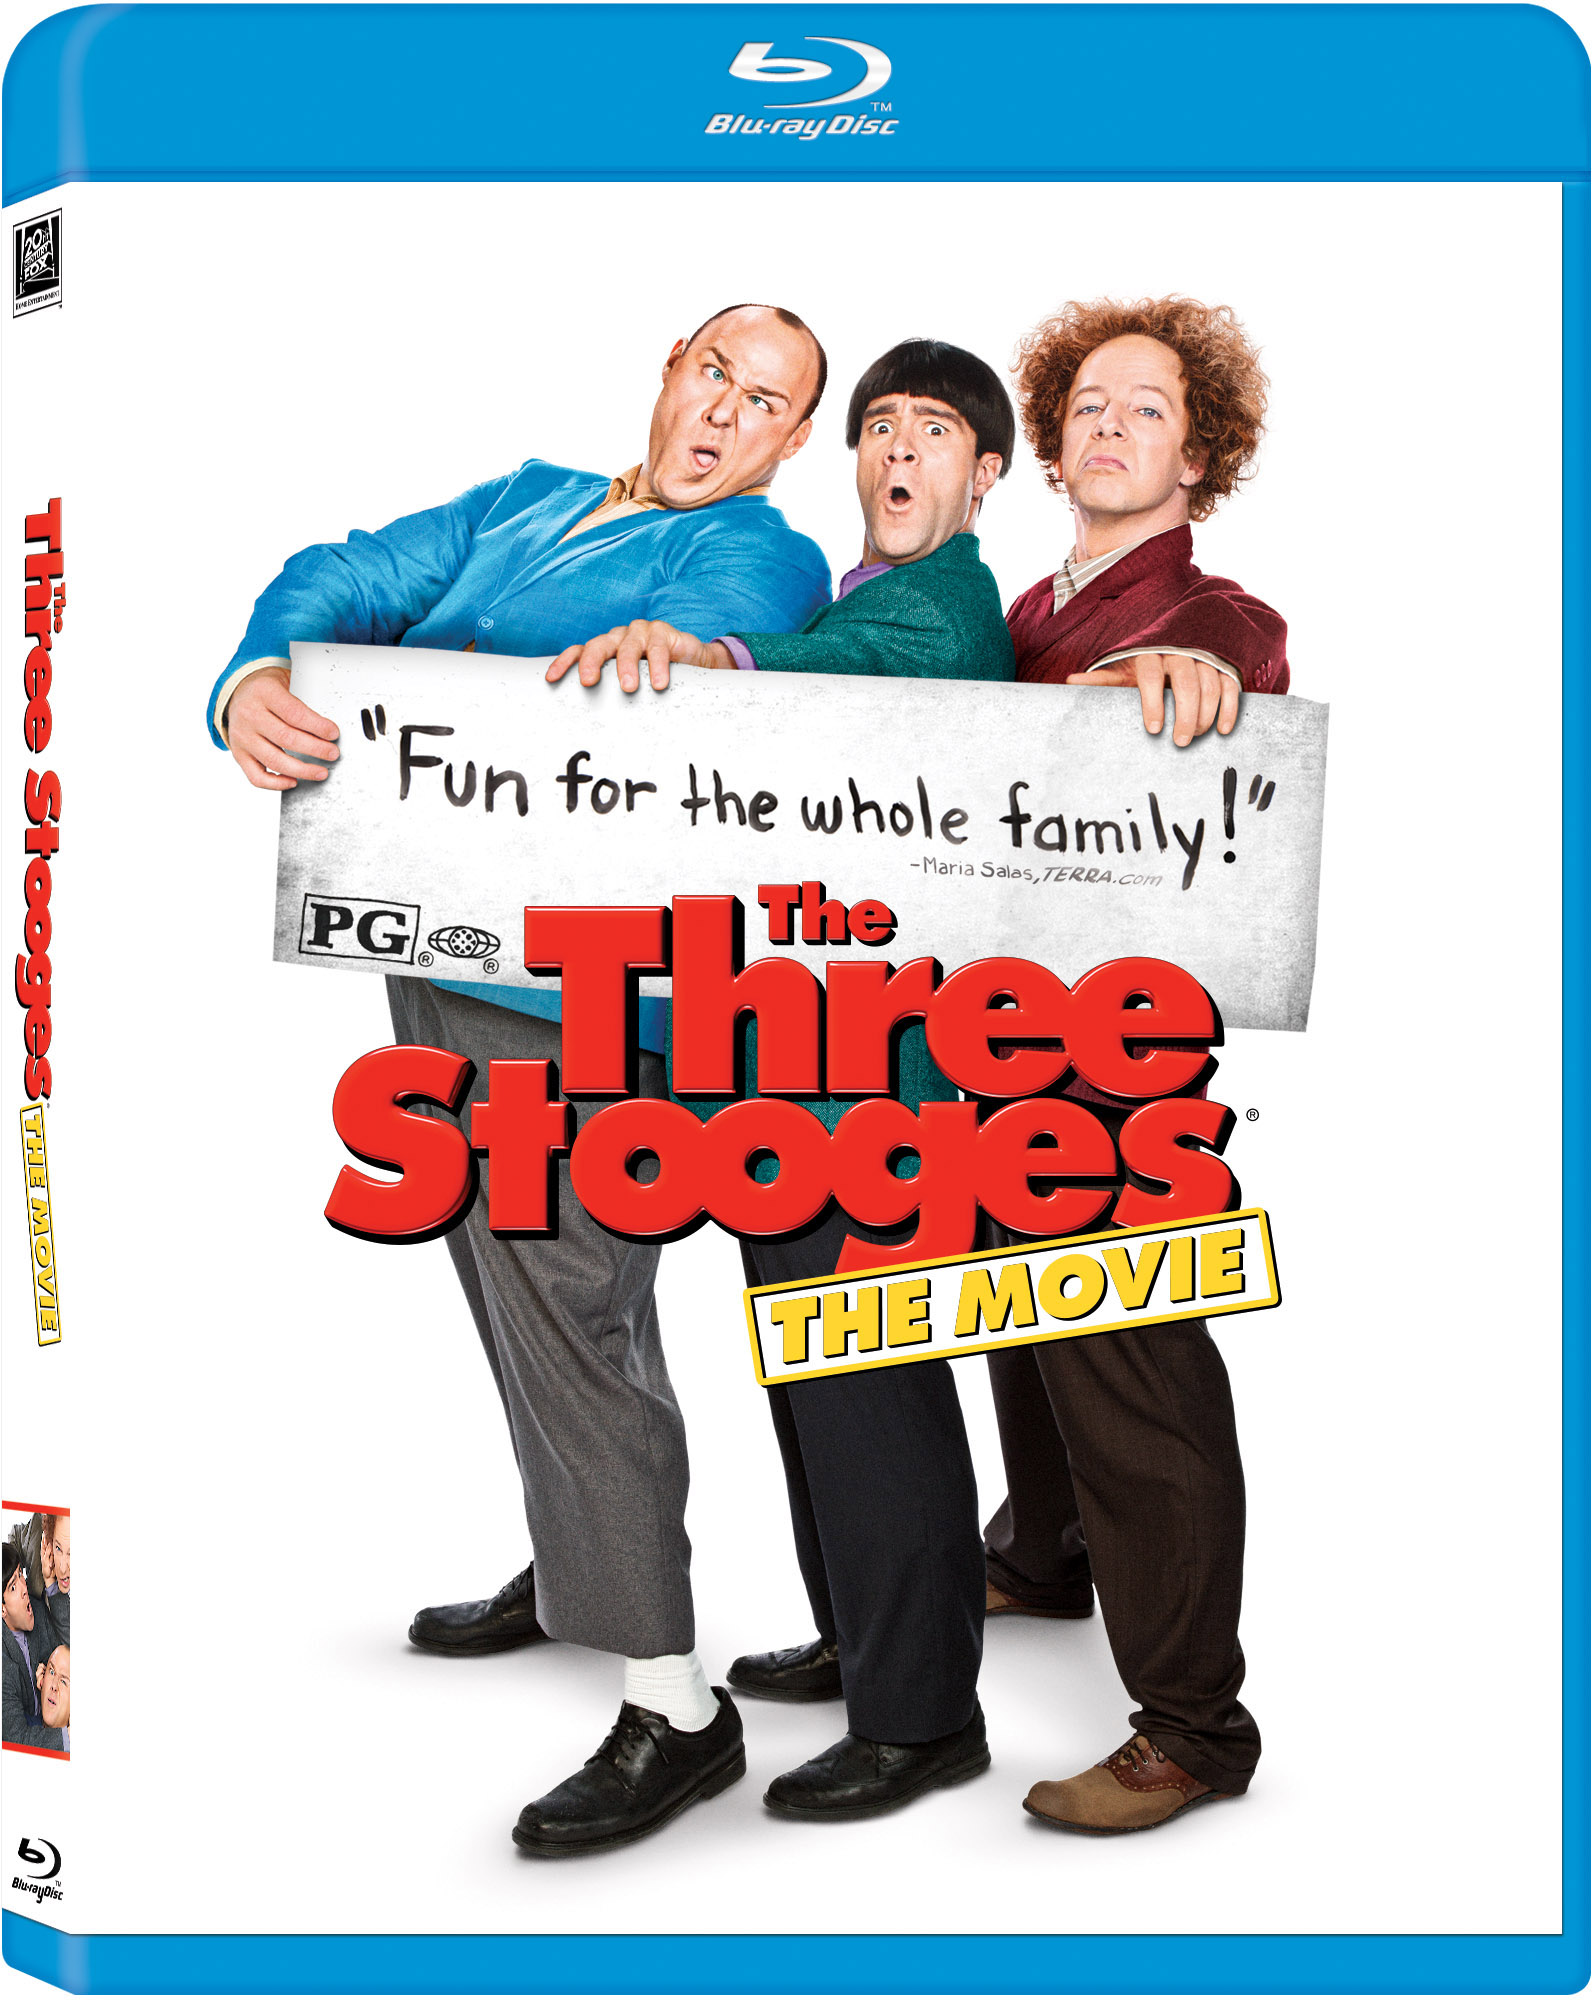 The Three Stooges (Blu-ray) by NEWS CORPORATION